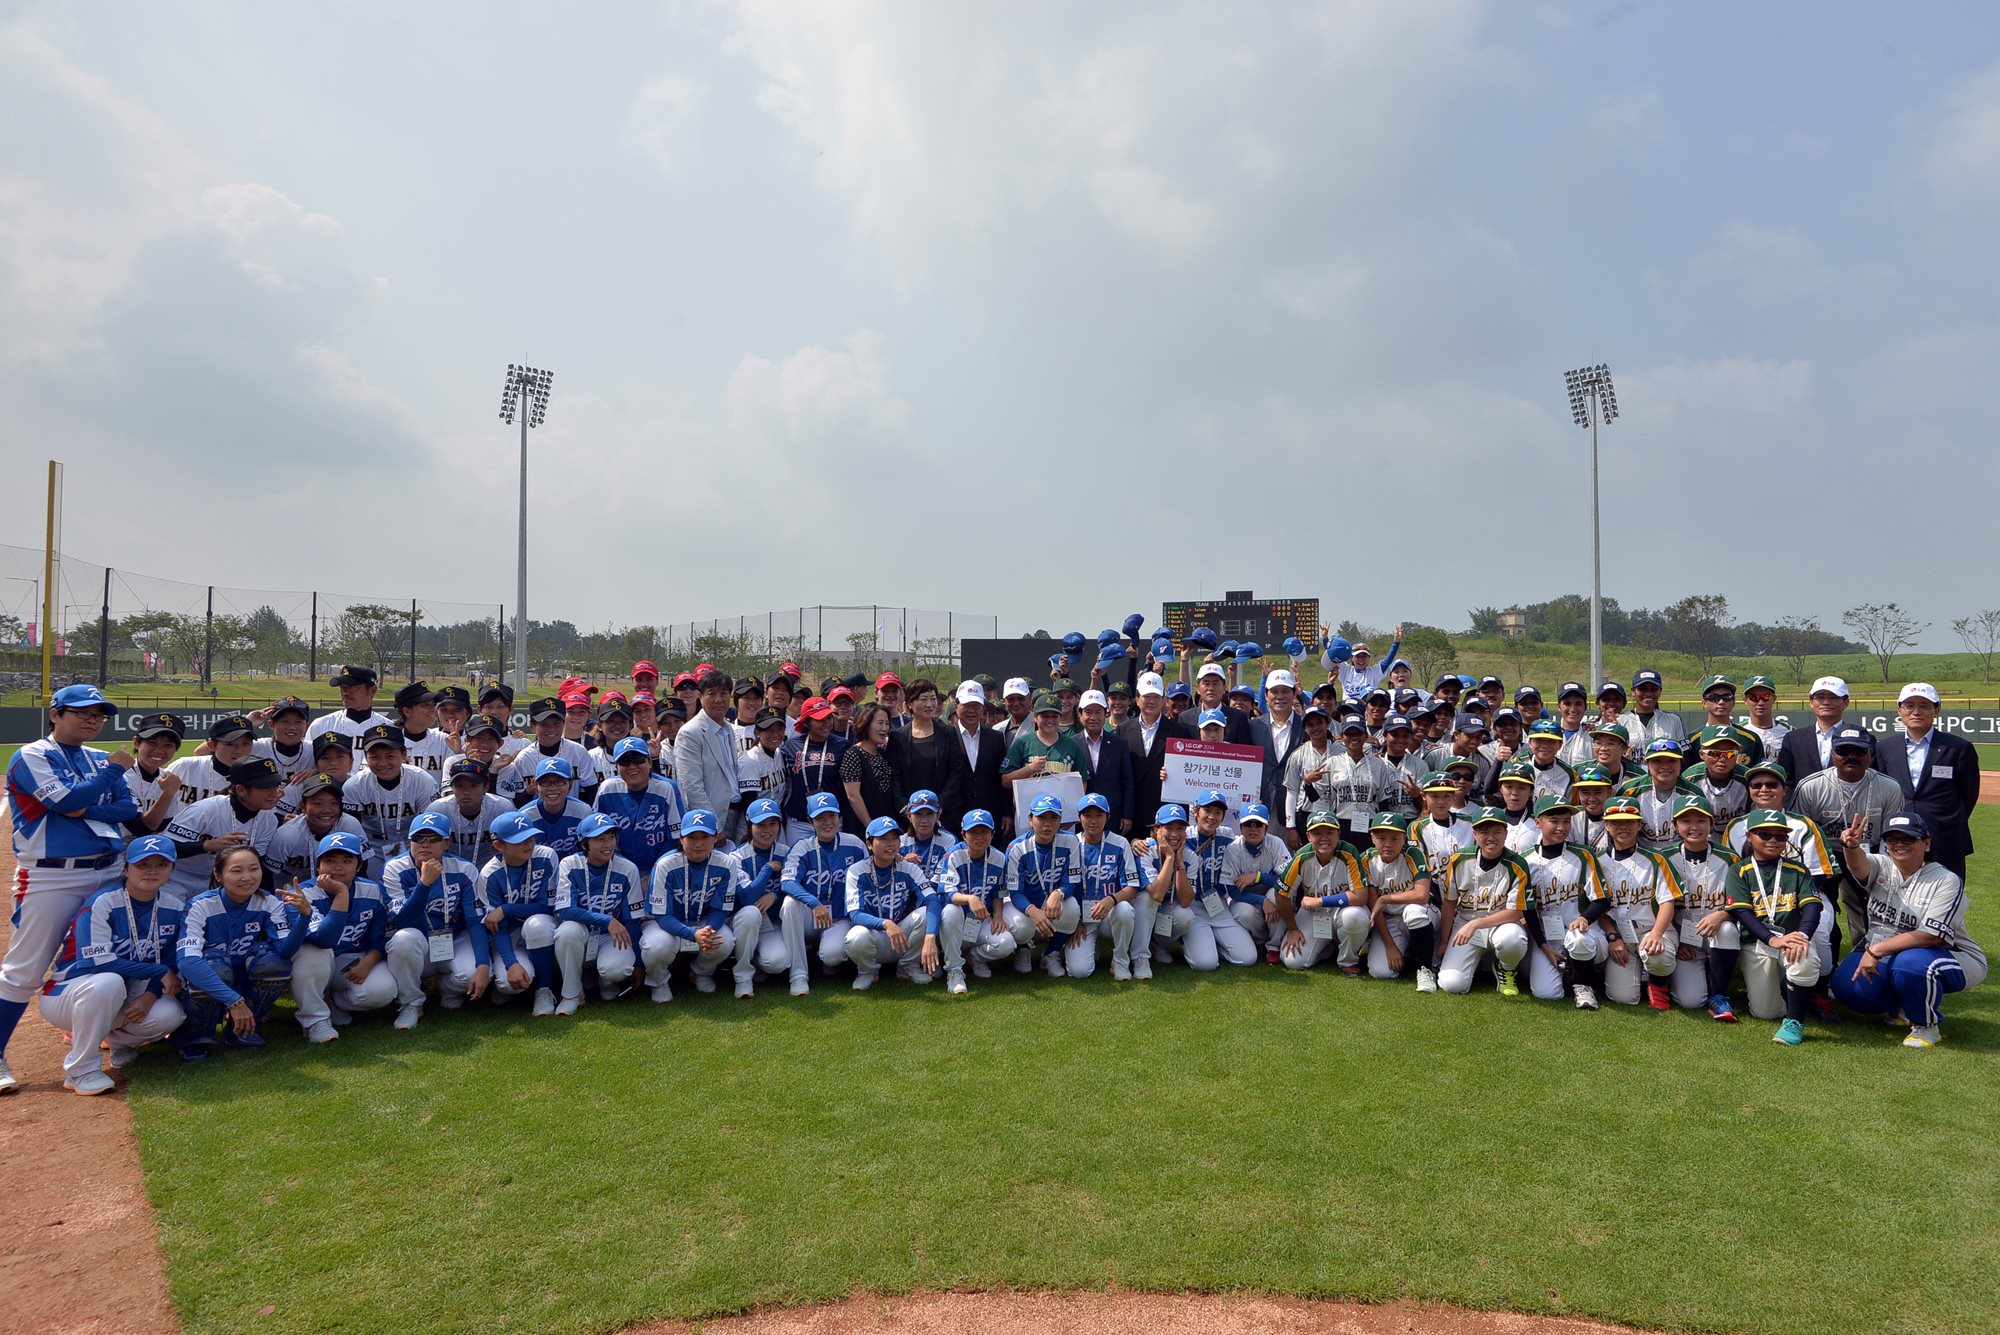 A group photo with the participants at the LG Cup 2014.